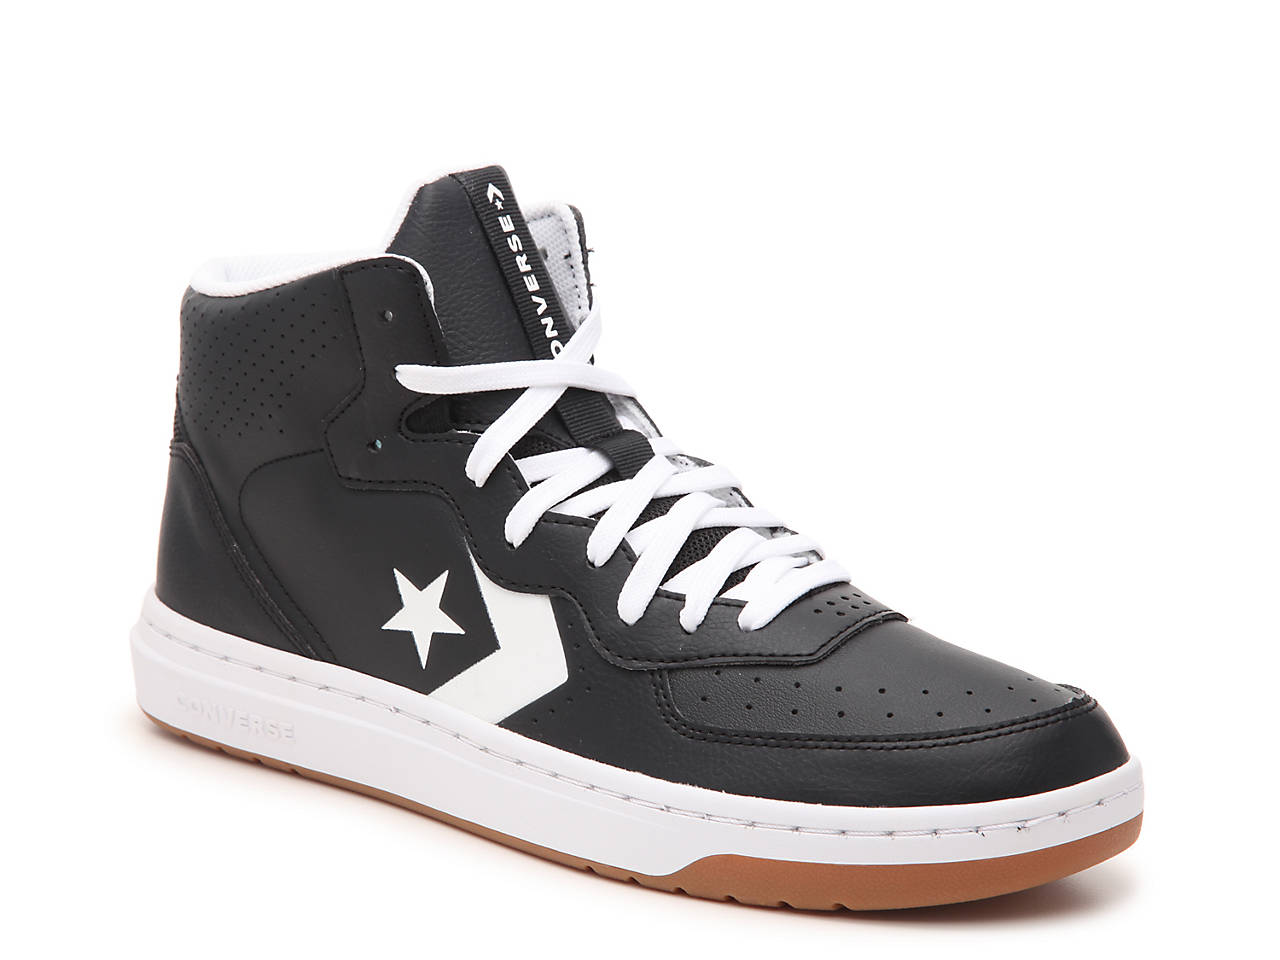 Rival High Top Sneaker Men's